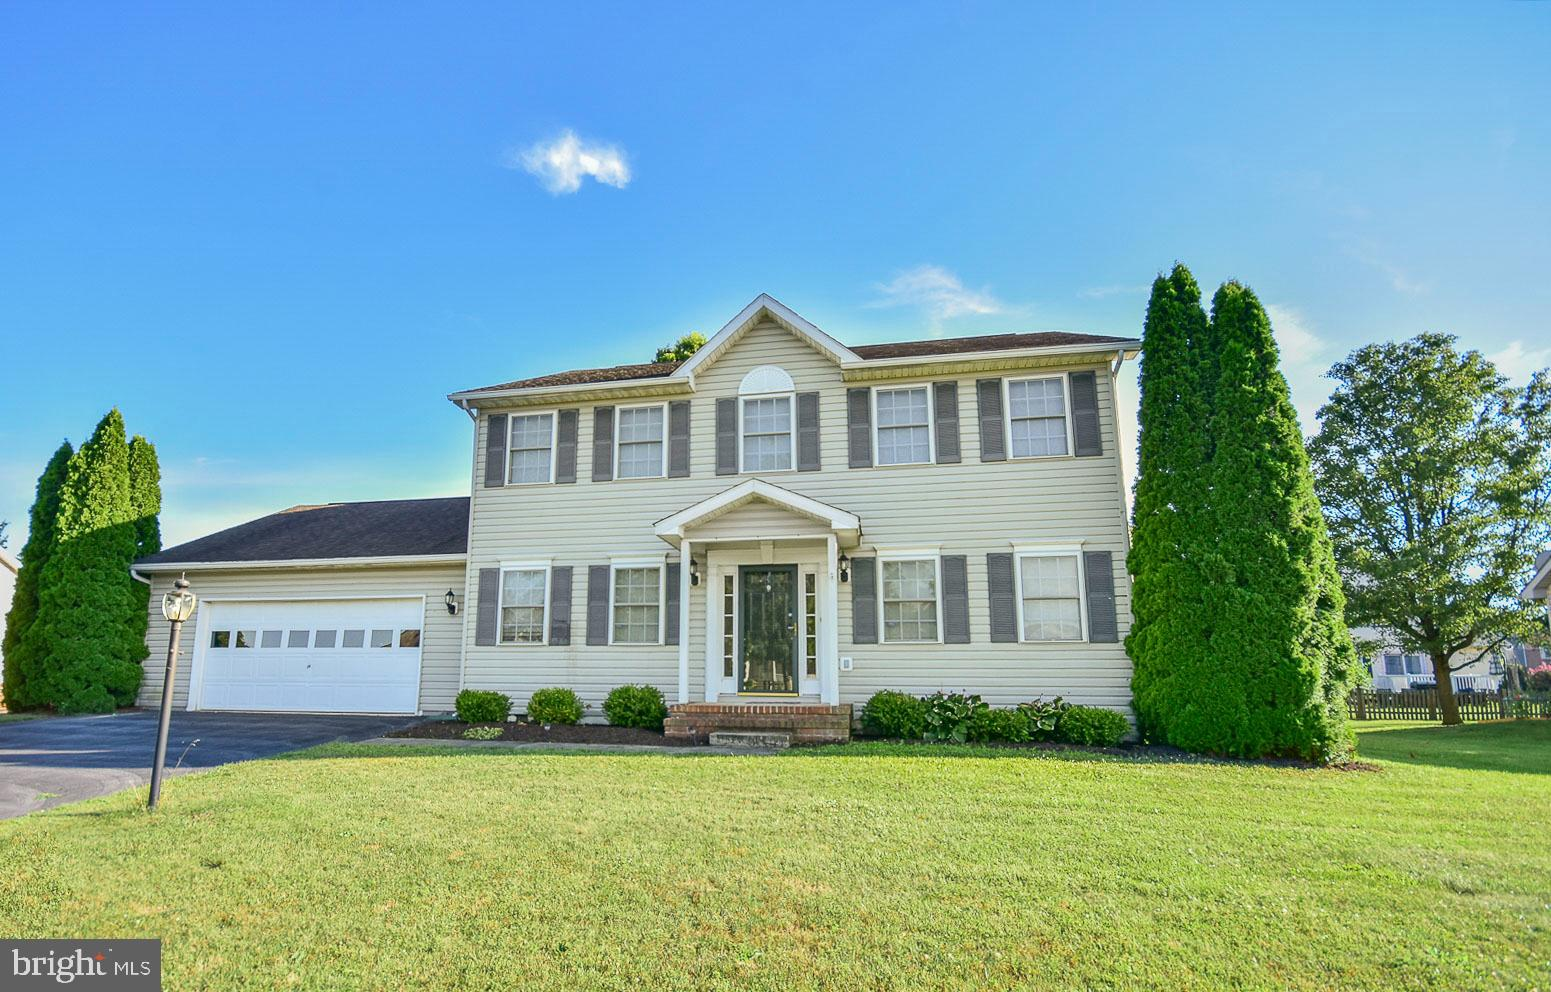 Lovely Colonial located in Spring Mills Subdivision. Home is close to shopping, medical buildings, s